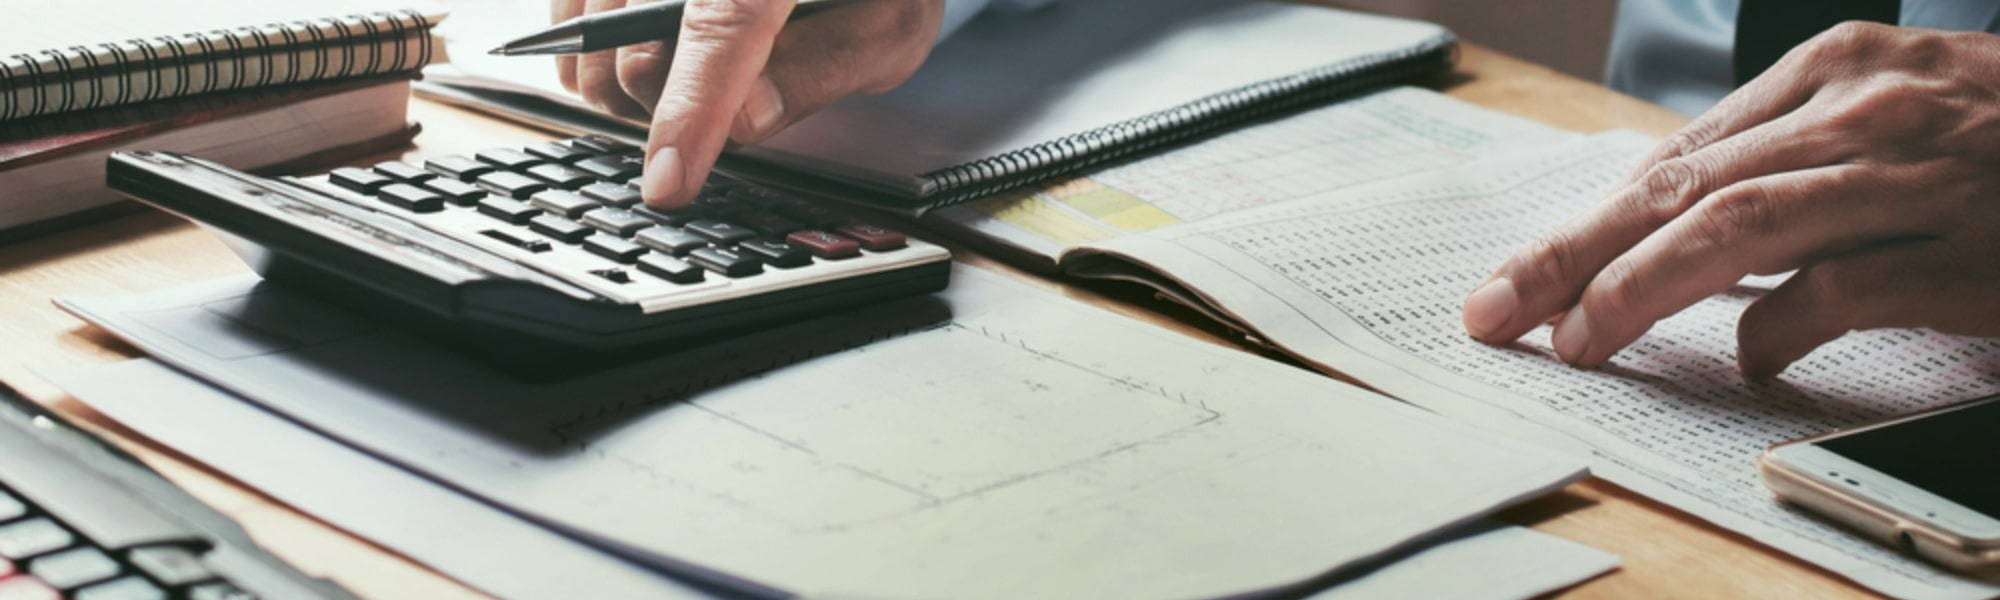 accountant using a calculator